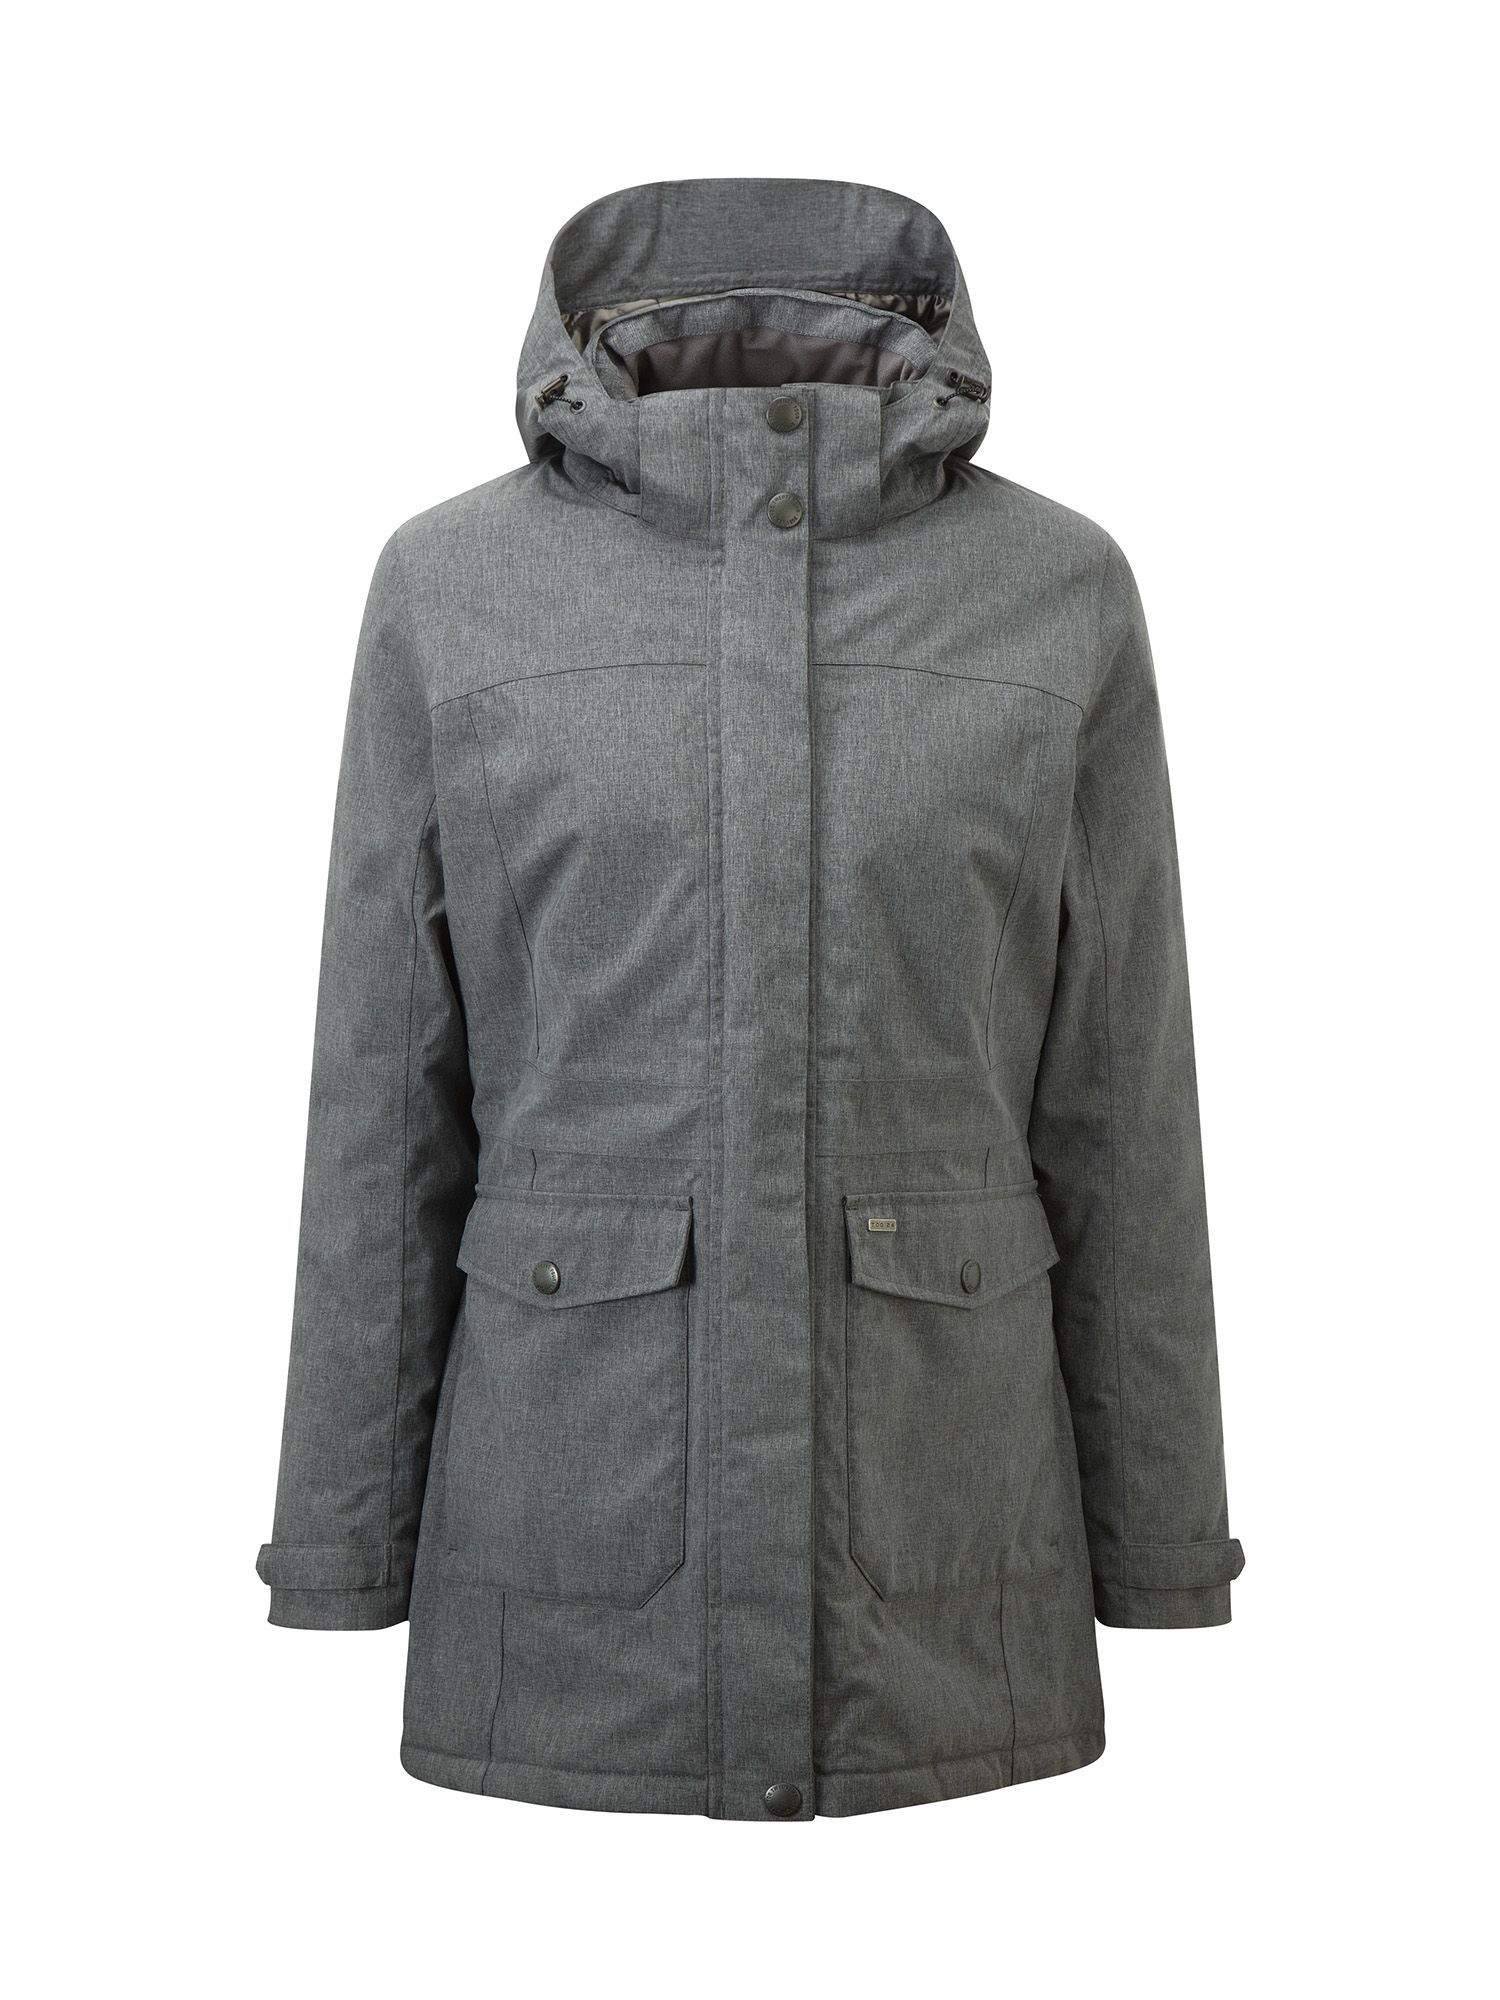 Tog 24 Bexley Womens Milatex Parka Jacket, Grey